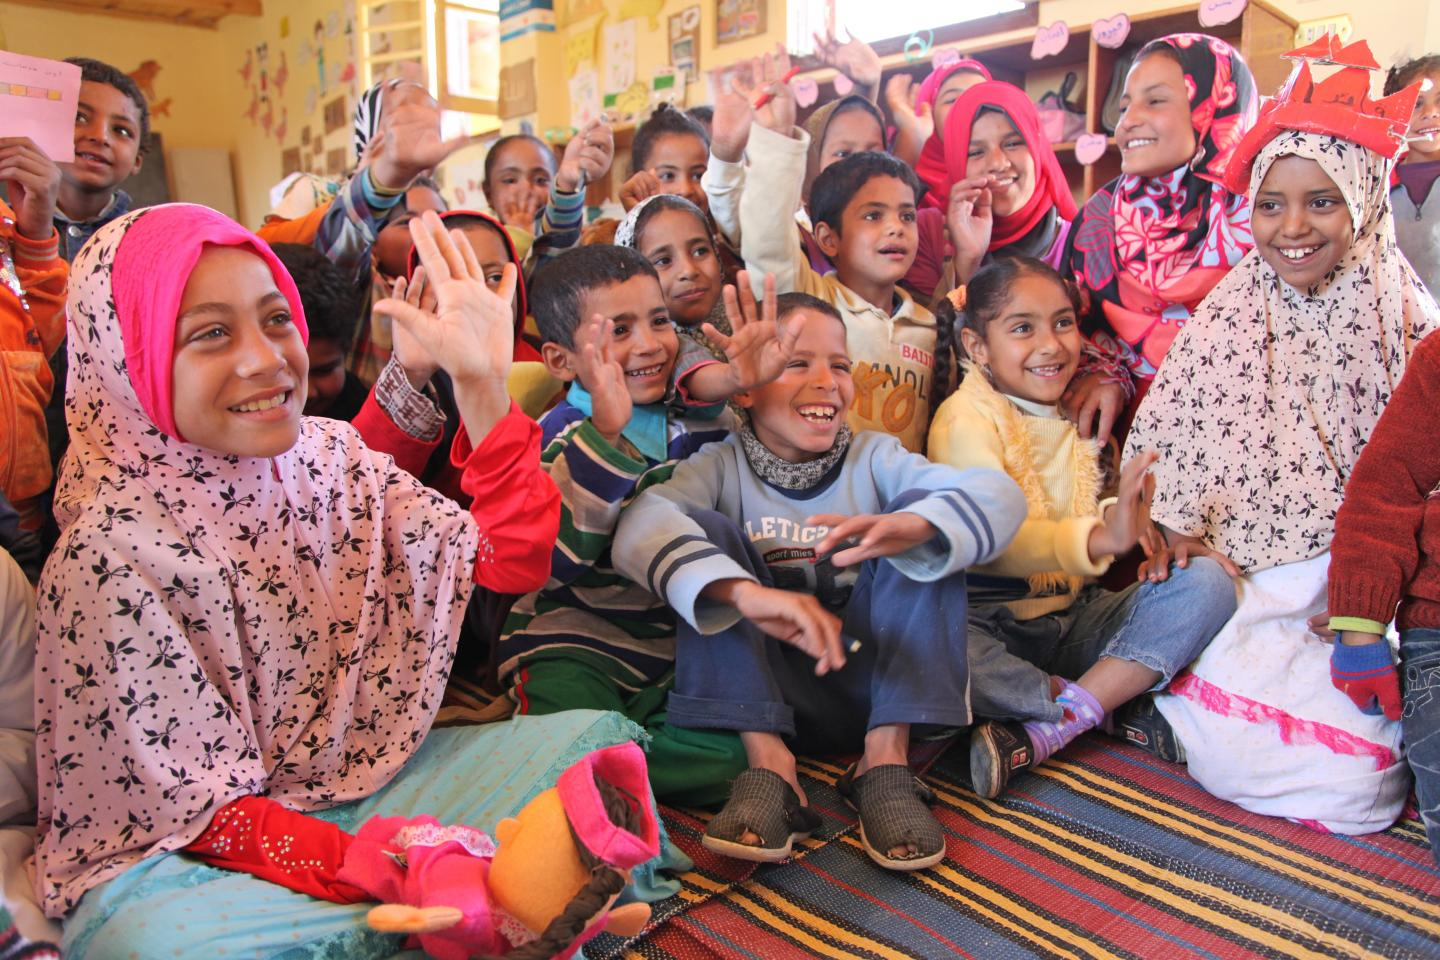 UNICEF's work in Egypt